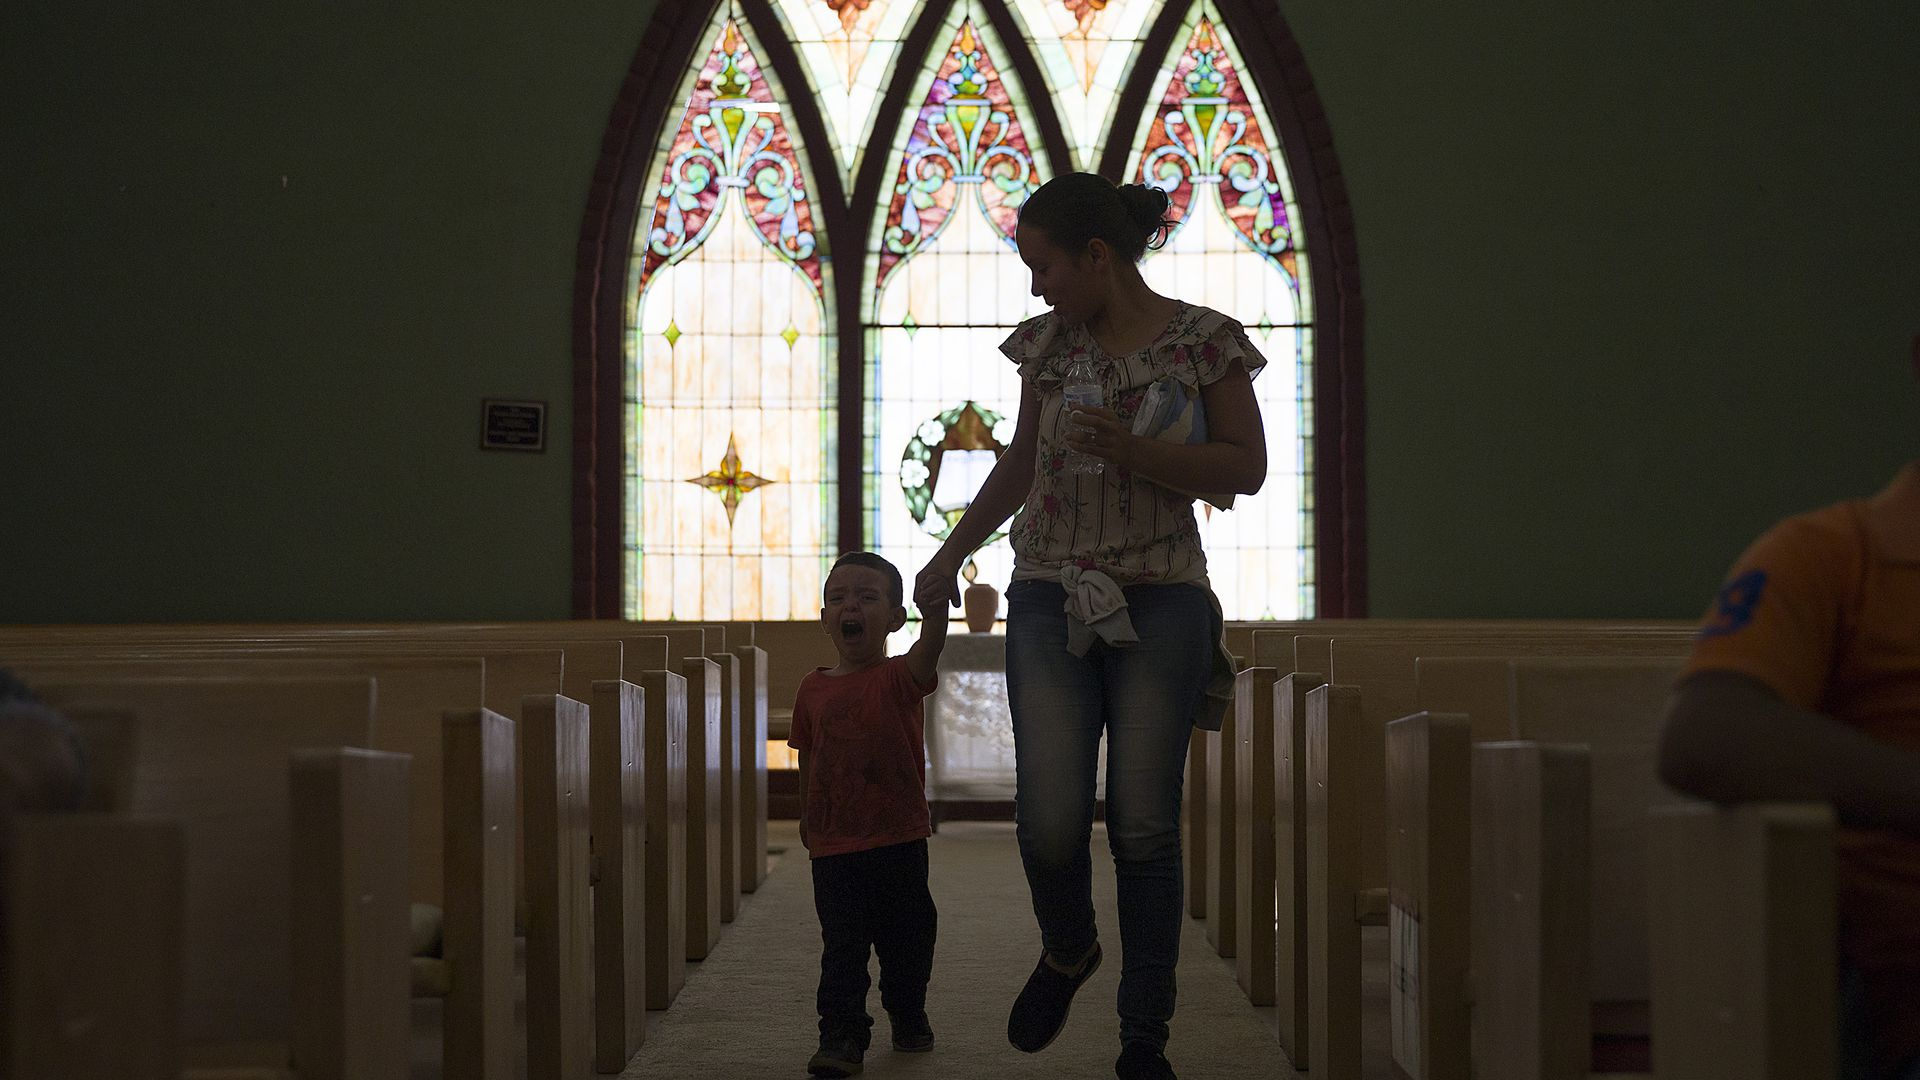 El Calvario Methodist Church which is housing migrants who are seeking asylum, after they were released by the U.S. Immigration and Customs Enforcement on June 3, 2019 in Las Cruces, New Mexico.